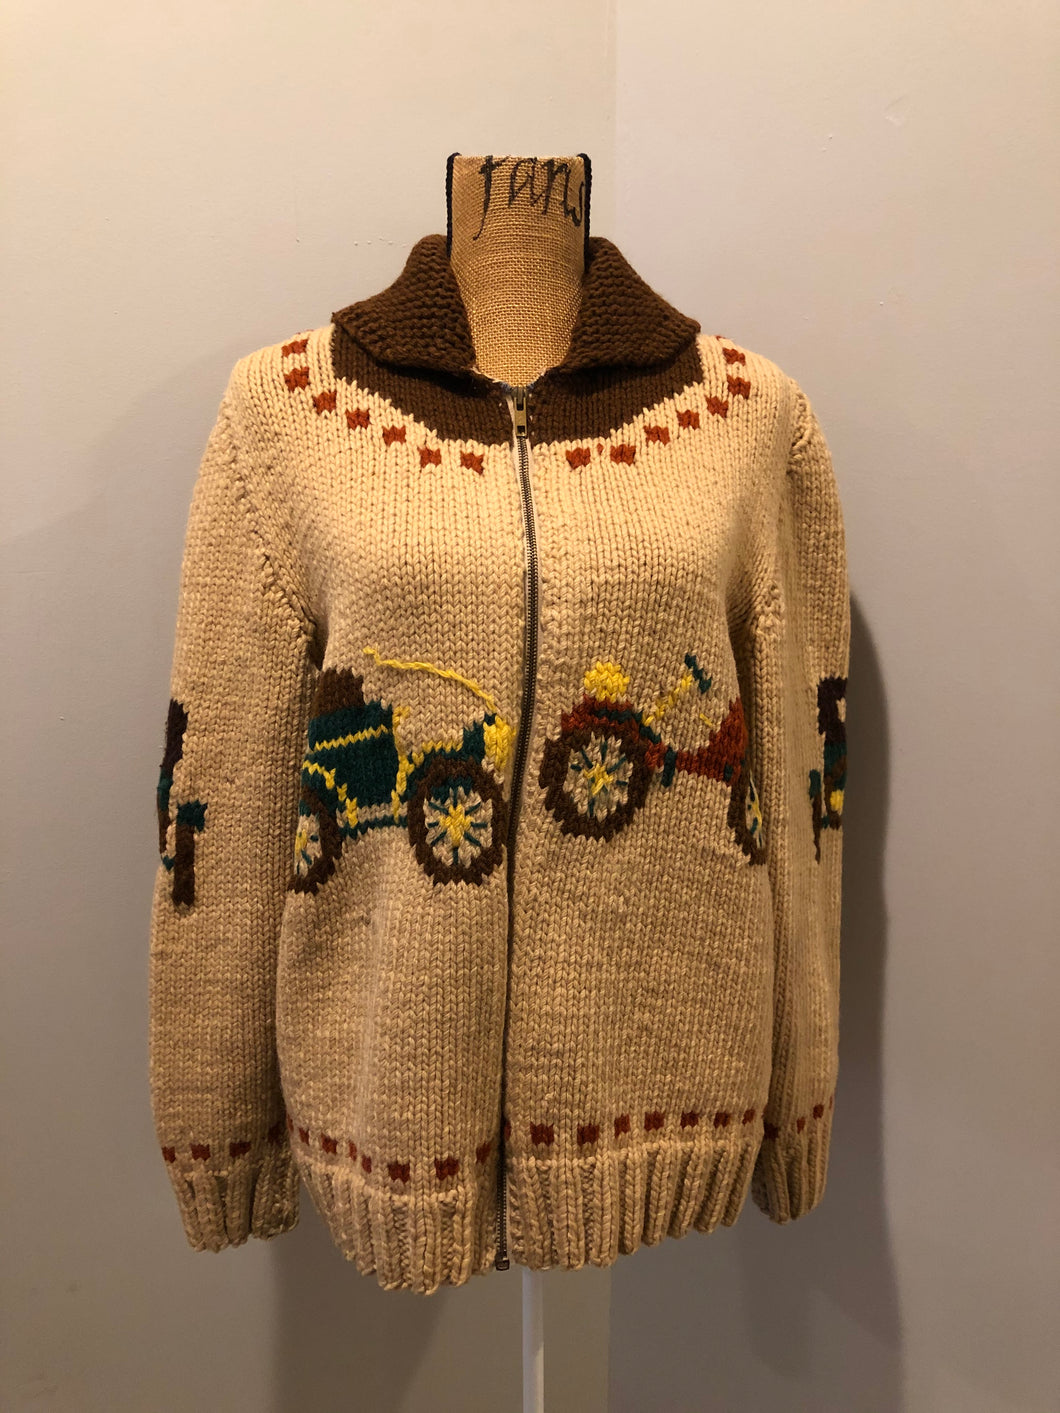 Mary Maxim hand knit zip cardigan in beige with dark brown, green and yellow antique car design. Made in Nova Scotia.